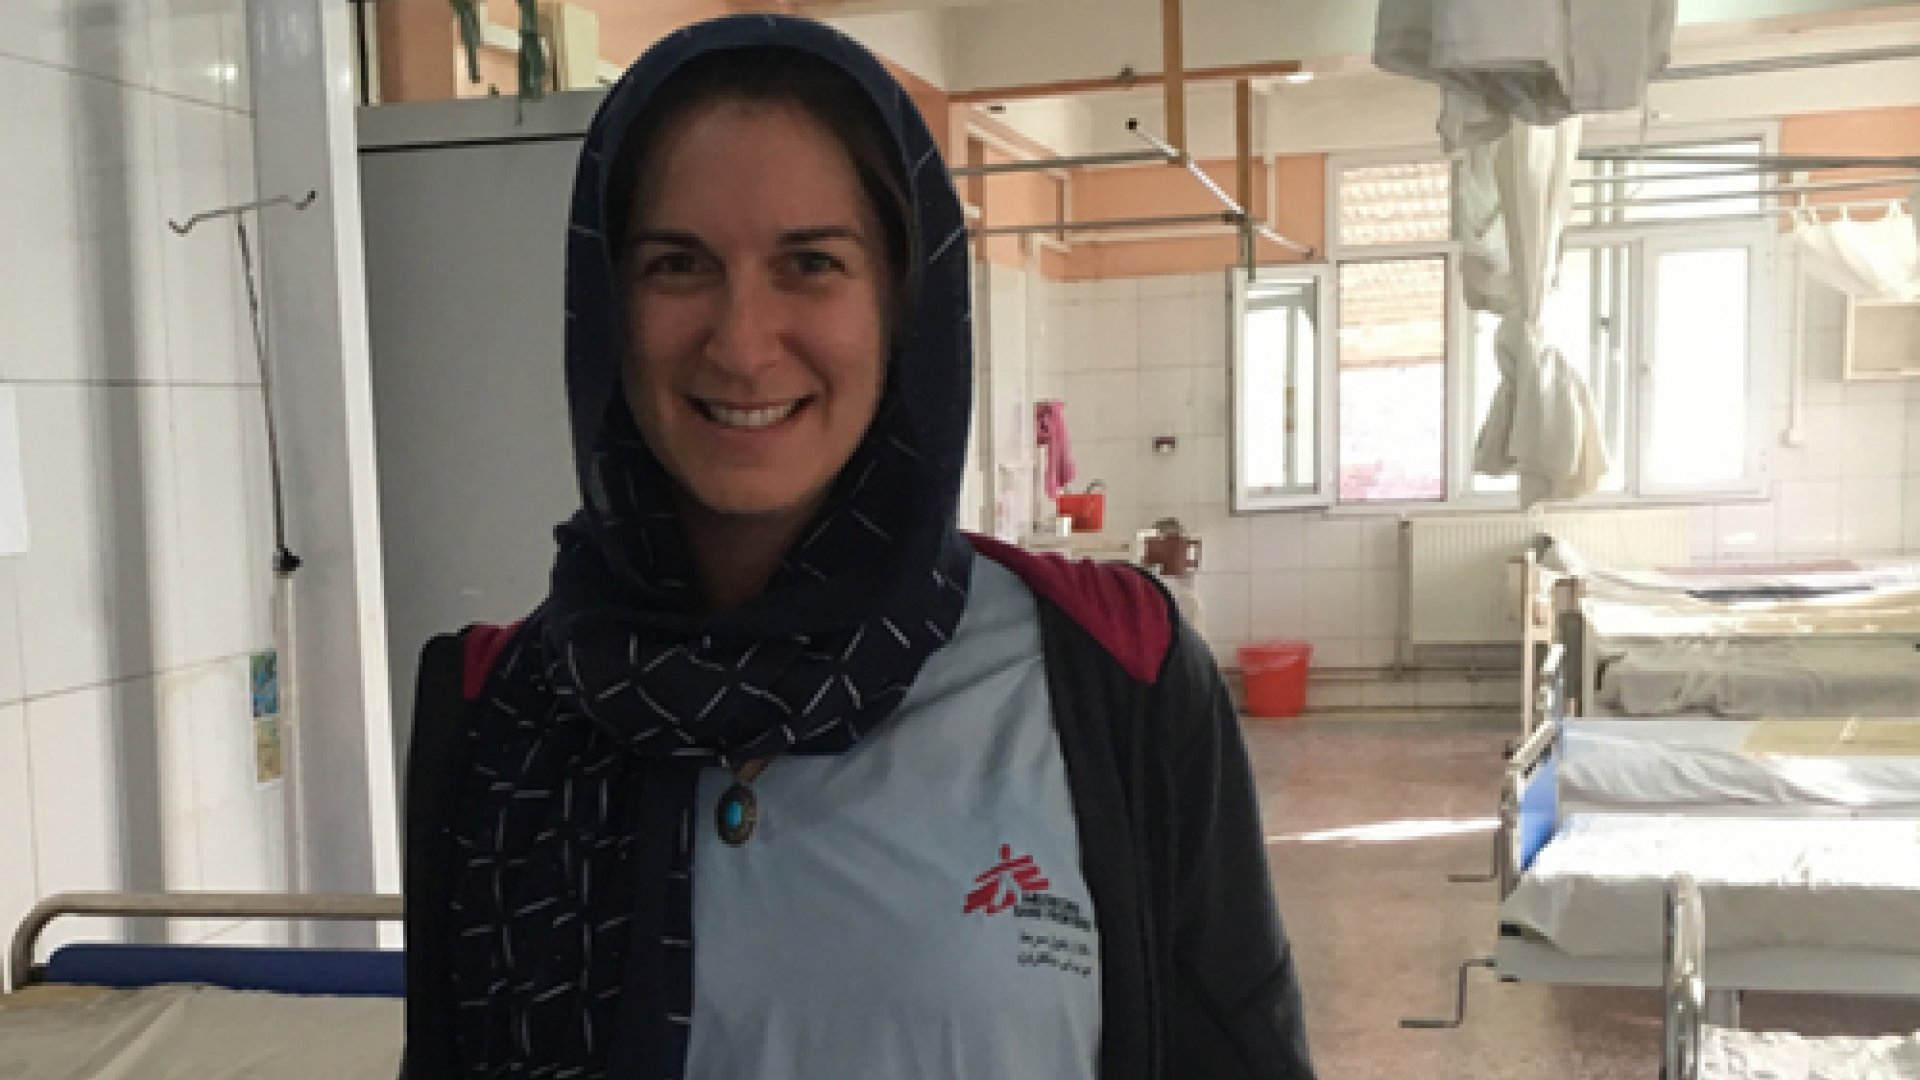 Gynekologen Heather Gottlieb i Afghanistan.